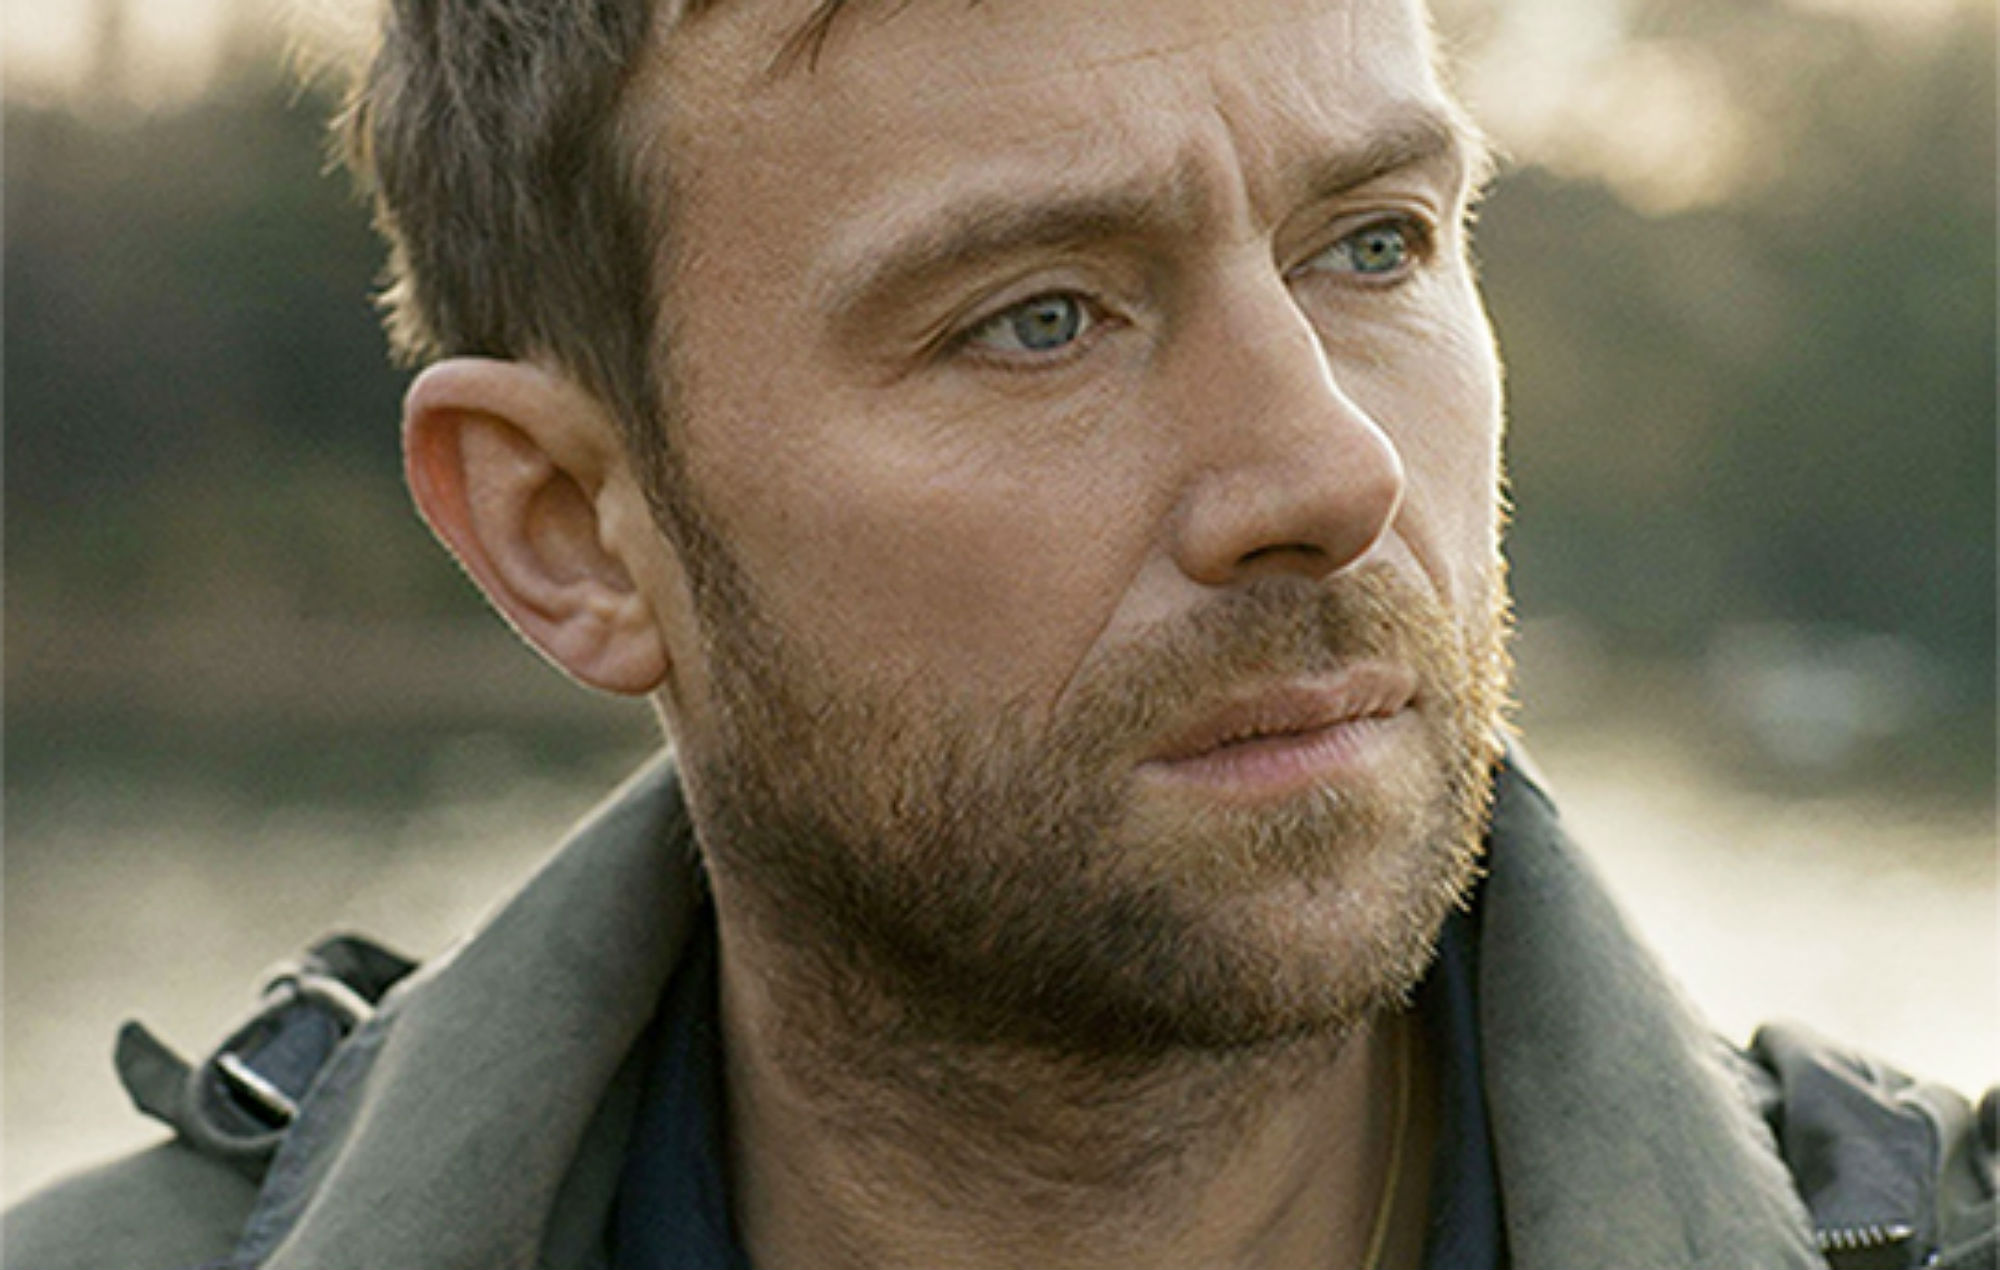 Damon Albarn announces new project and tour, 'The Nearer the Fountain, More Pure the Stream Flows'